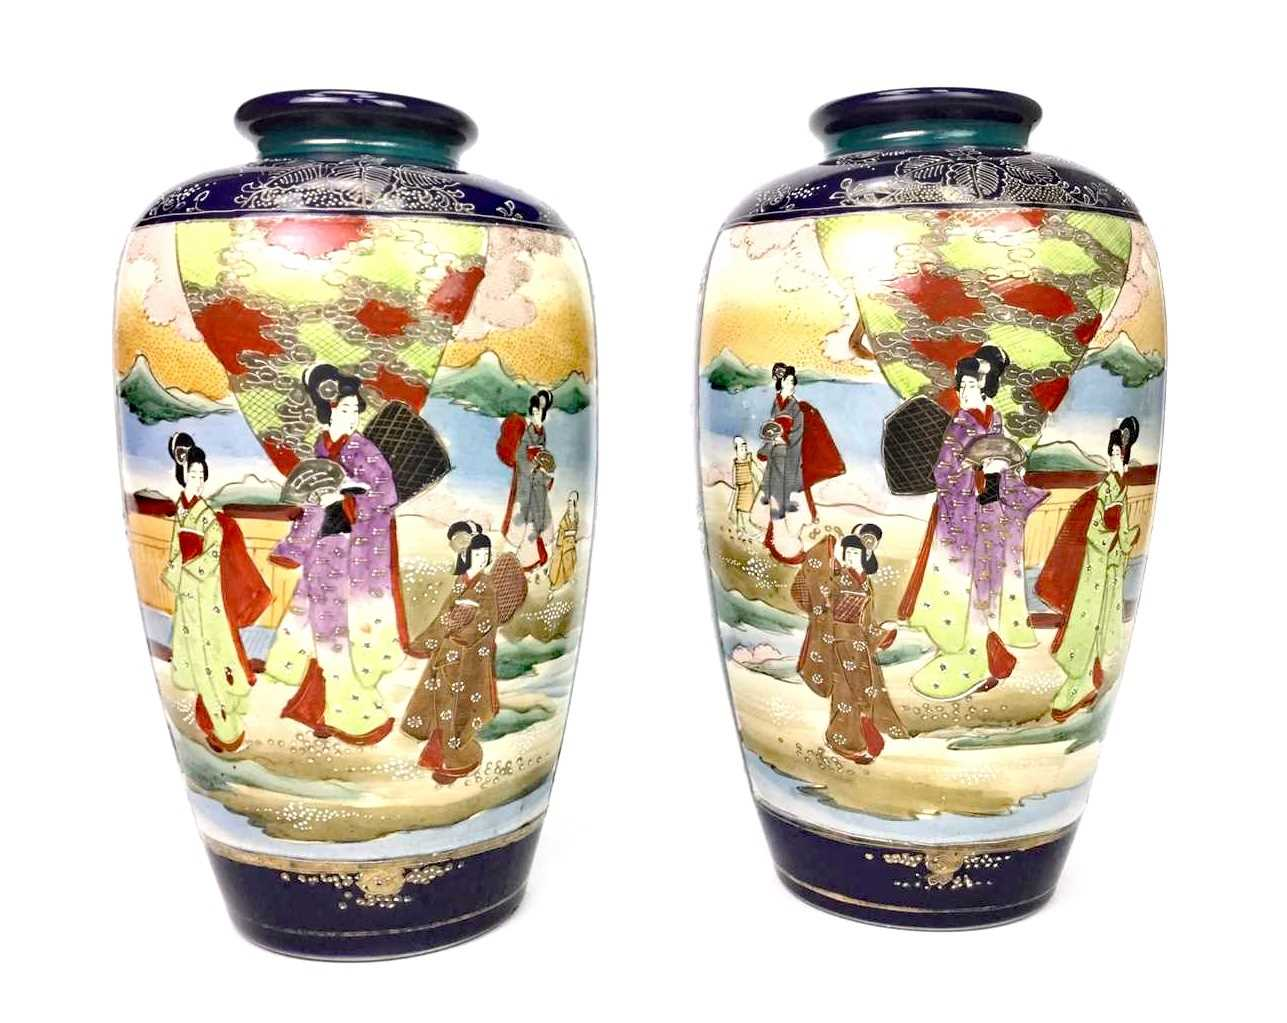 Lot 1021-A PAIR OF JAPANESE SATSUMA VASES